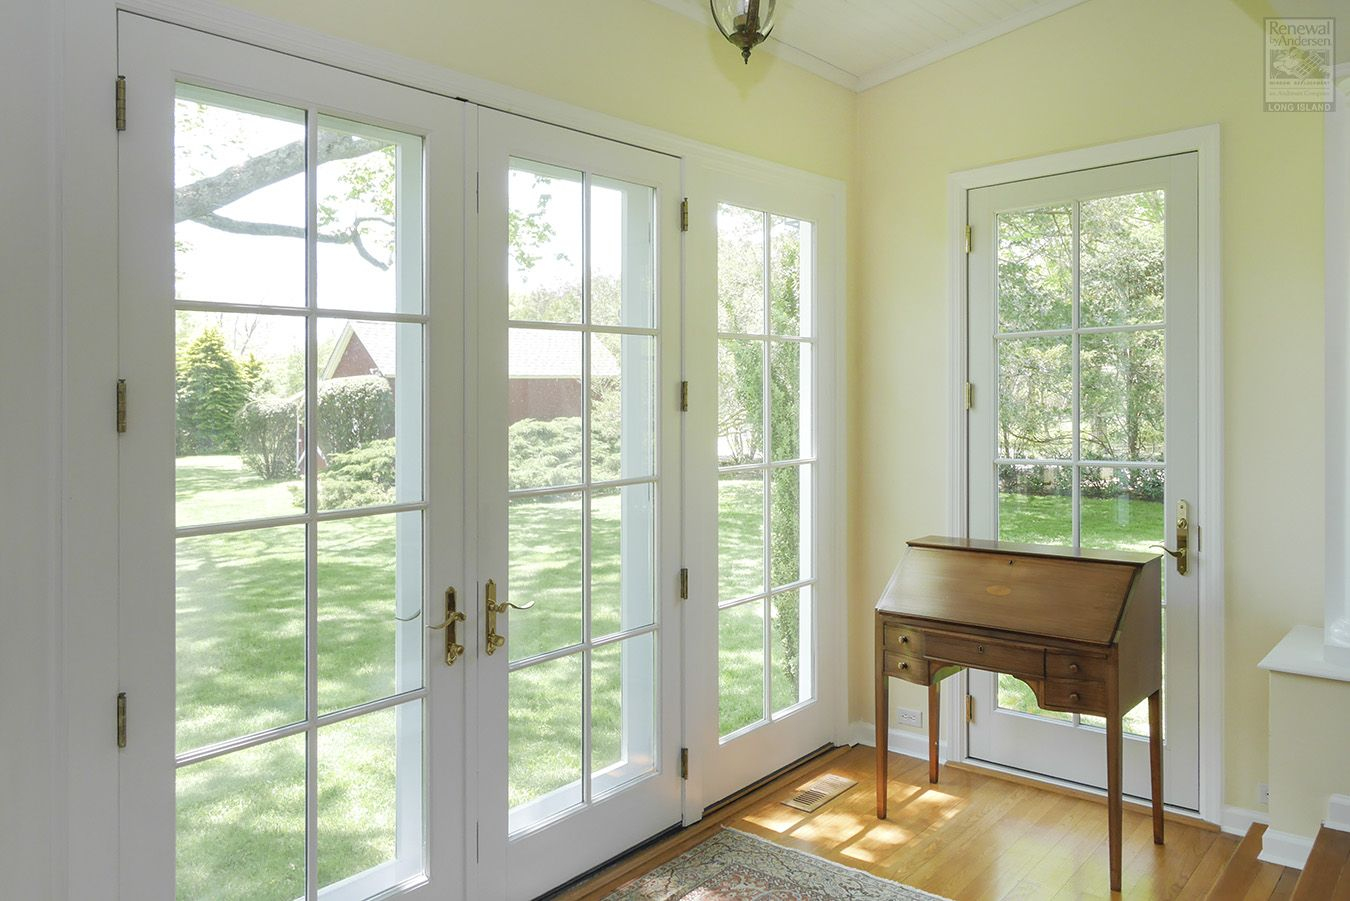 New Matches Old A Great Older Home Where We Installed New Doors And Windows Remodeling Renovation In 2020 Remodeling Renovation Home Windows